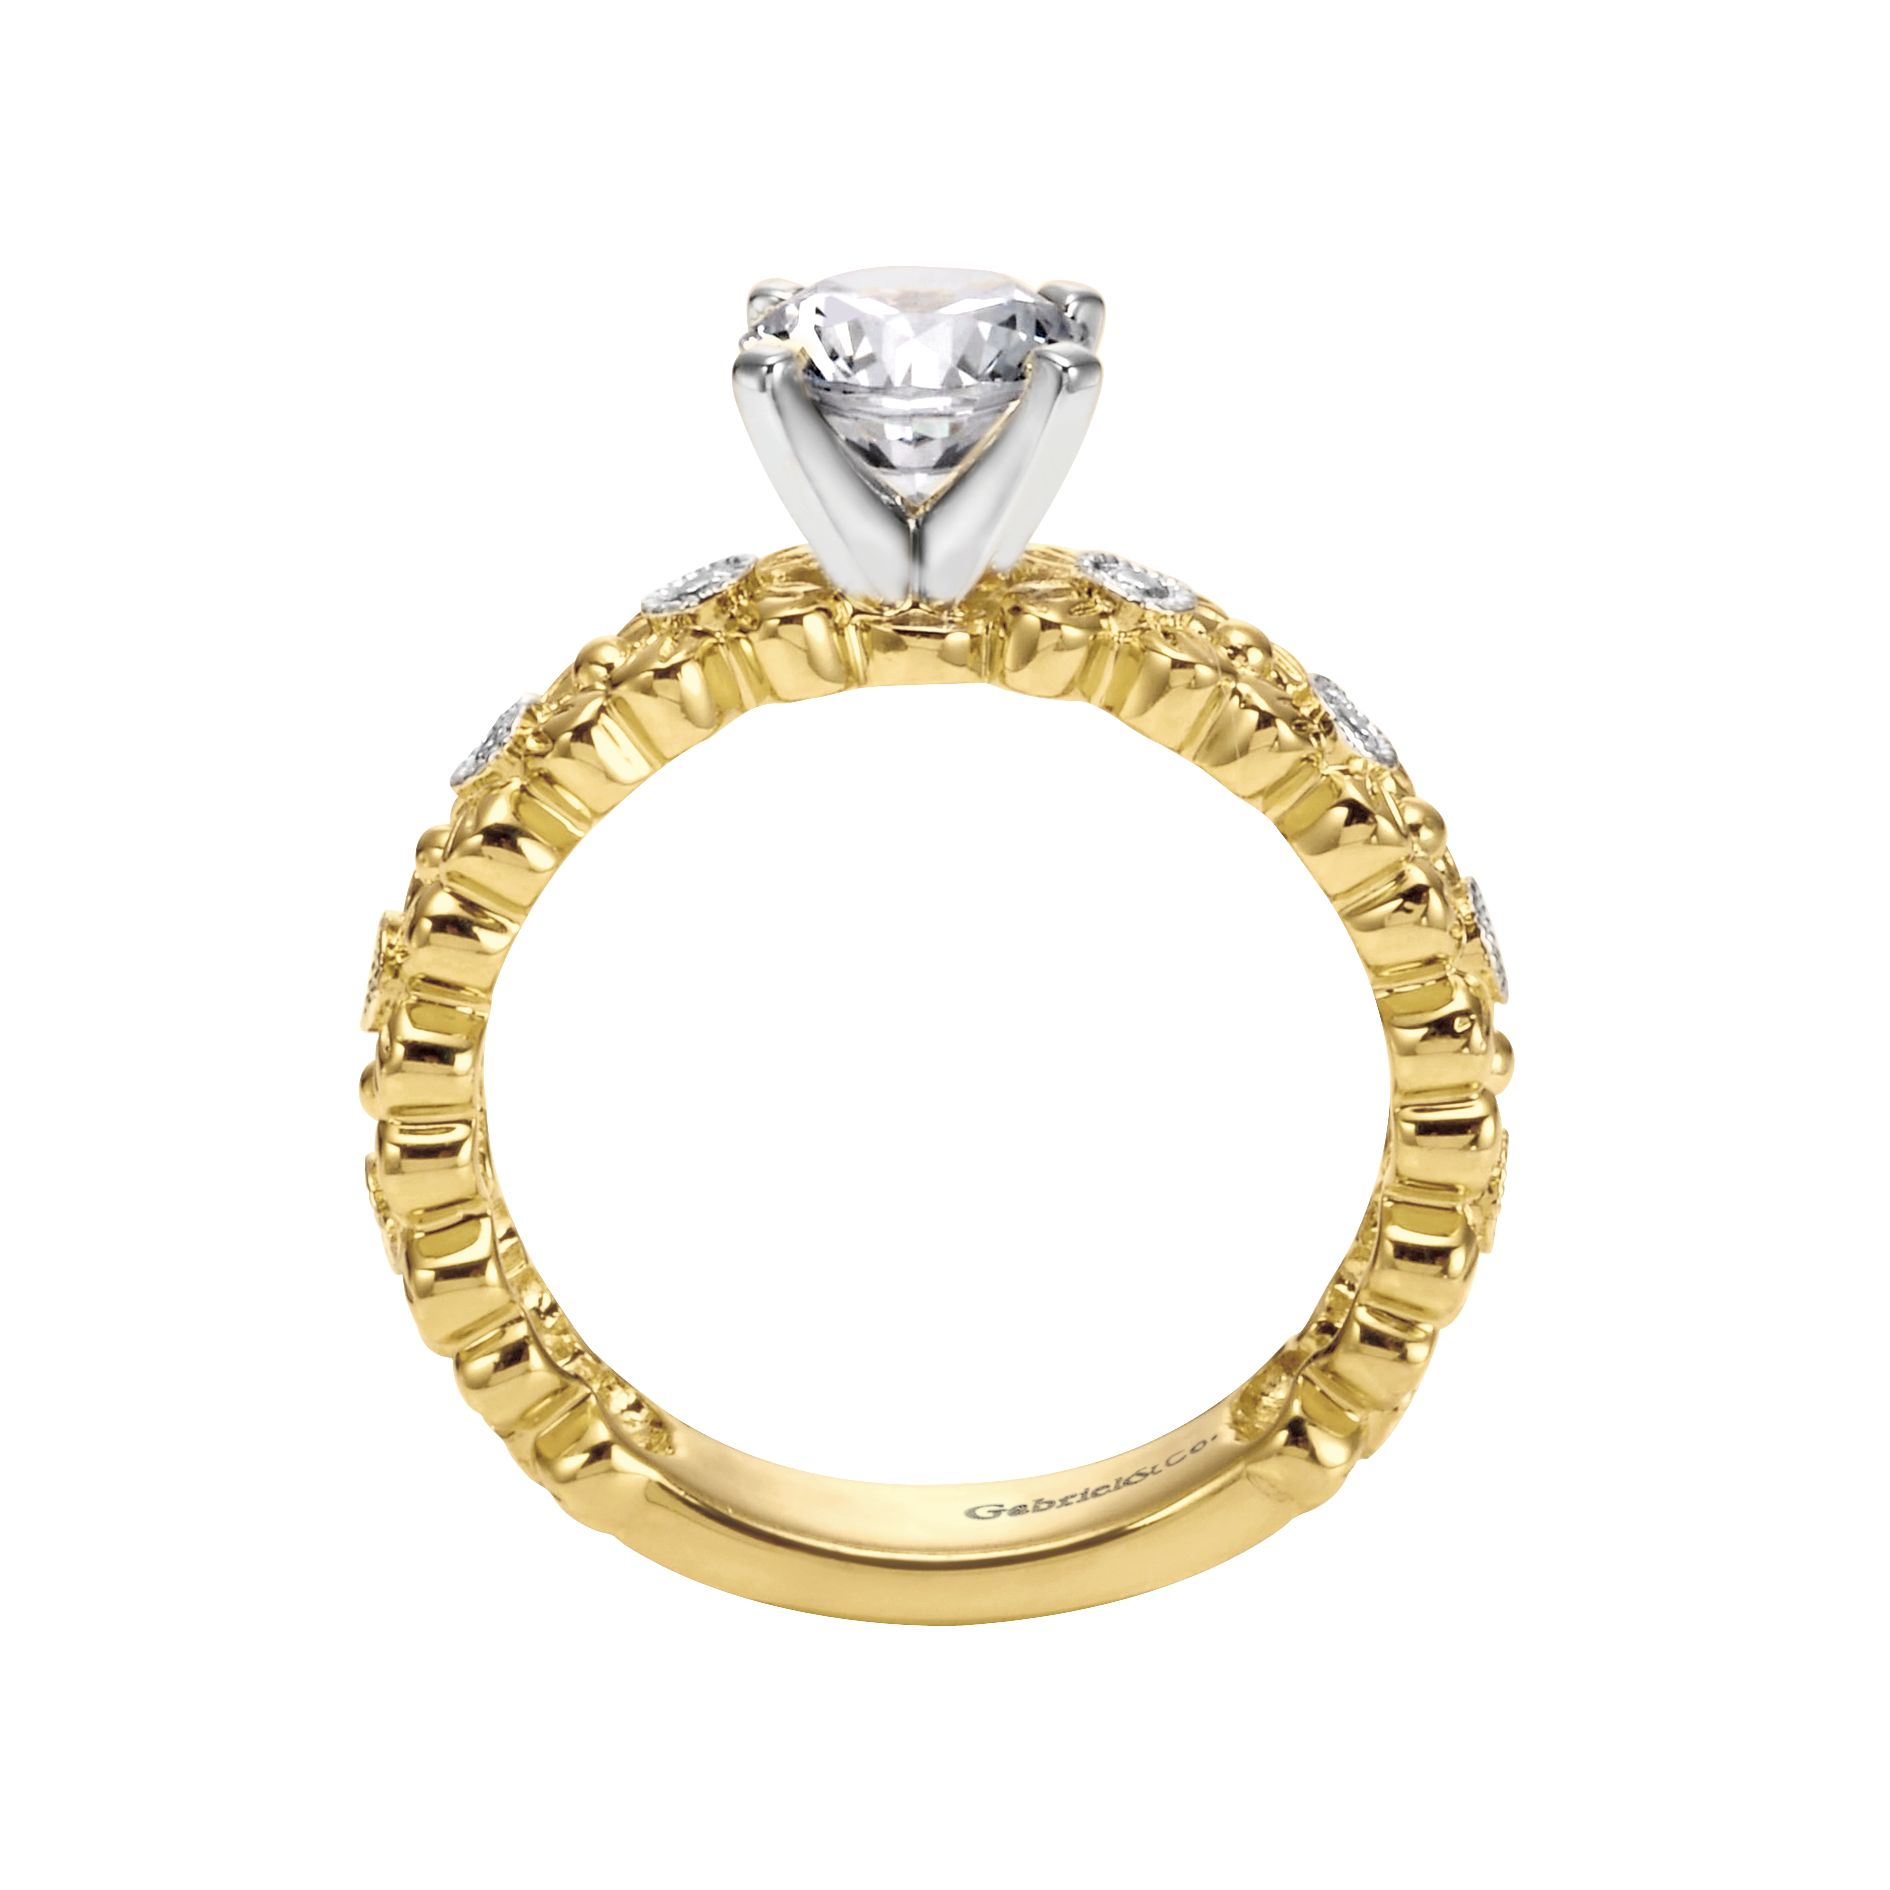 Engagement Rings - YELLOW GOLD ROUND STRAIGHT DIAMOND ENGAGEMENT RING - image #2